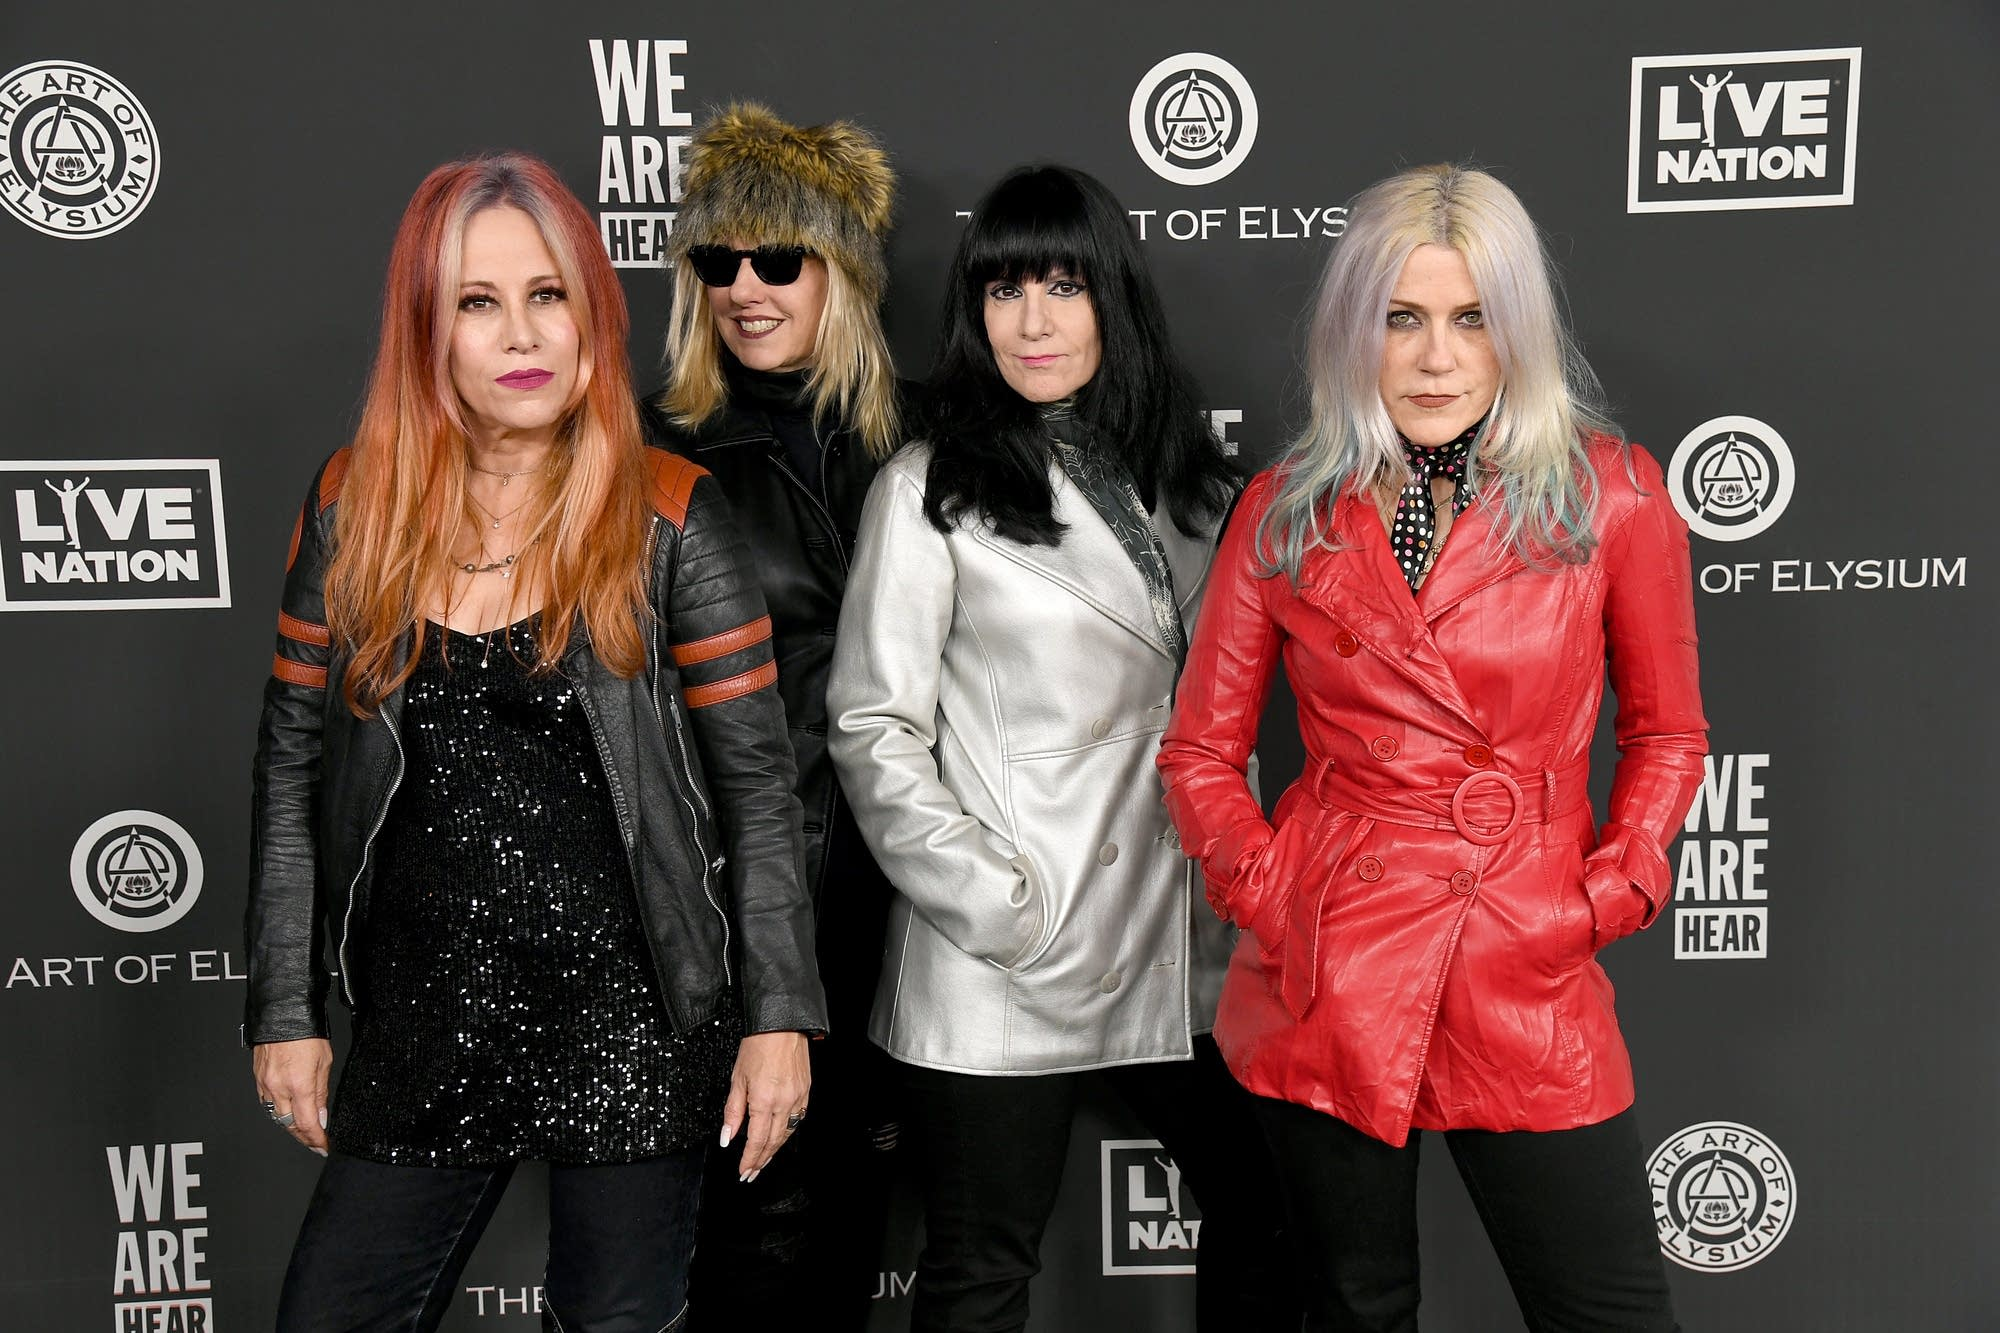 L7 band photo in January 2020